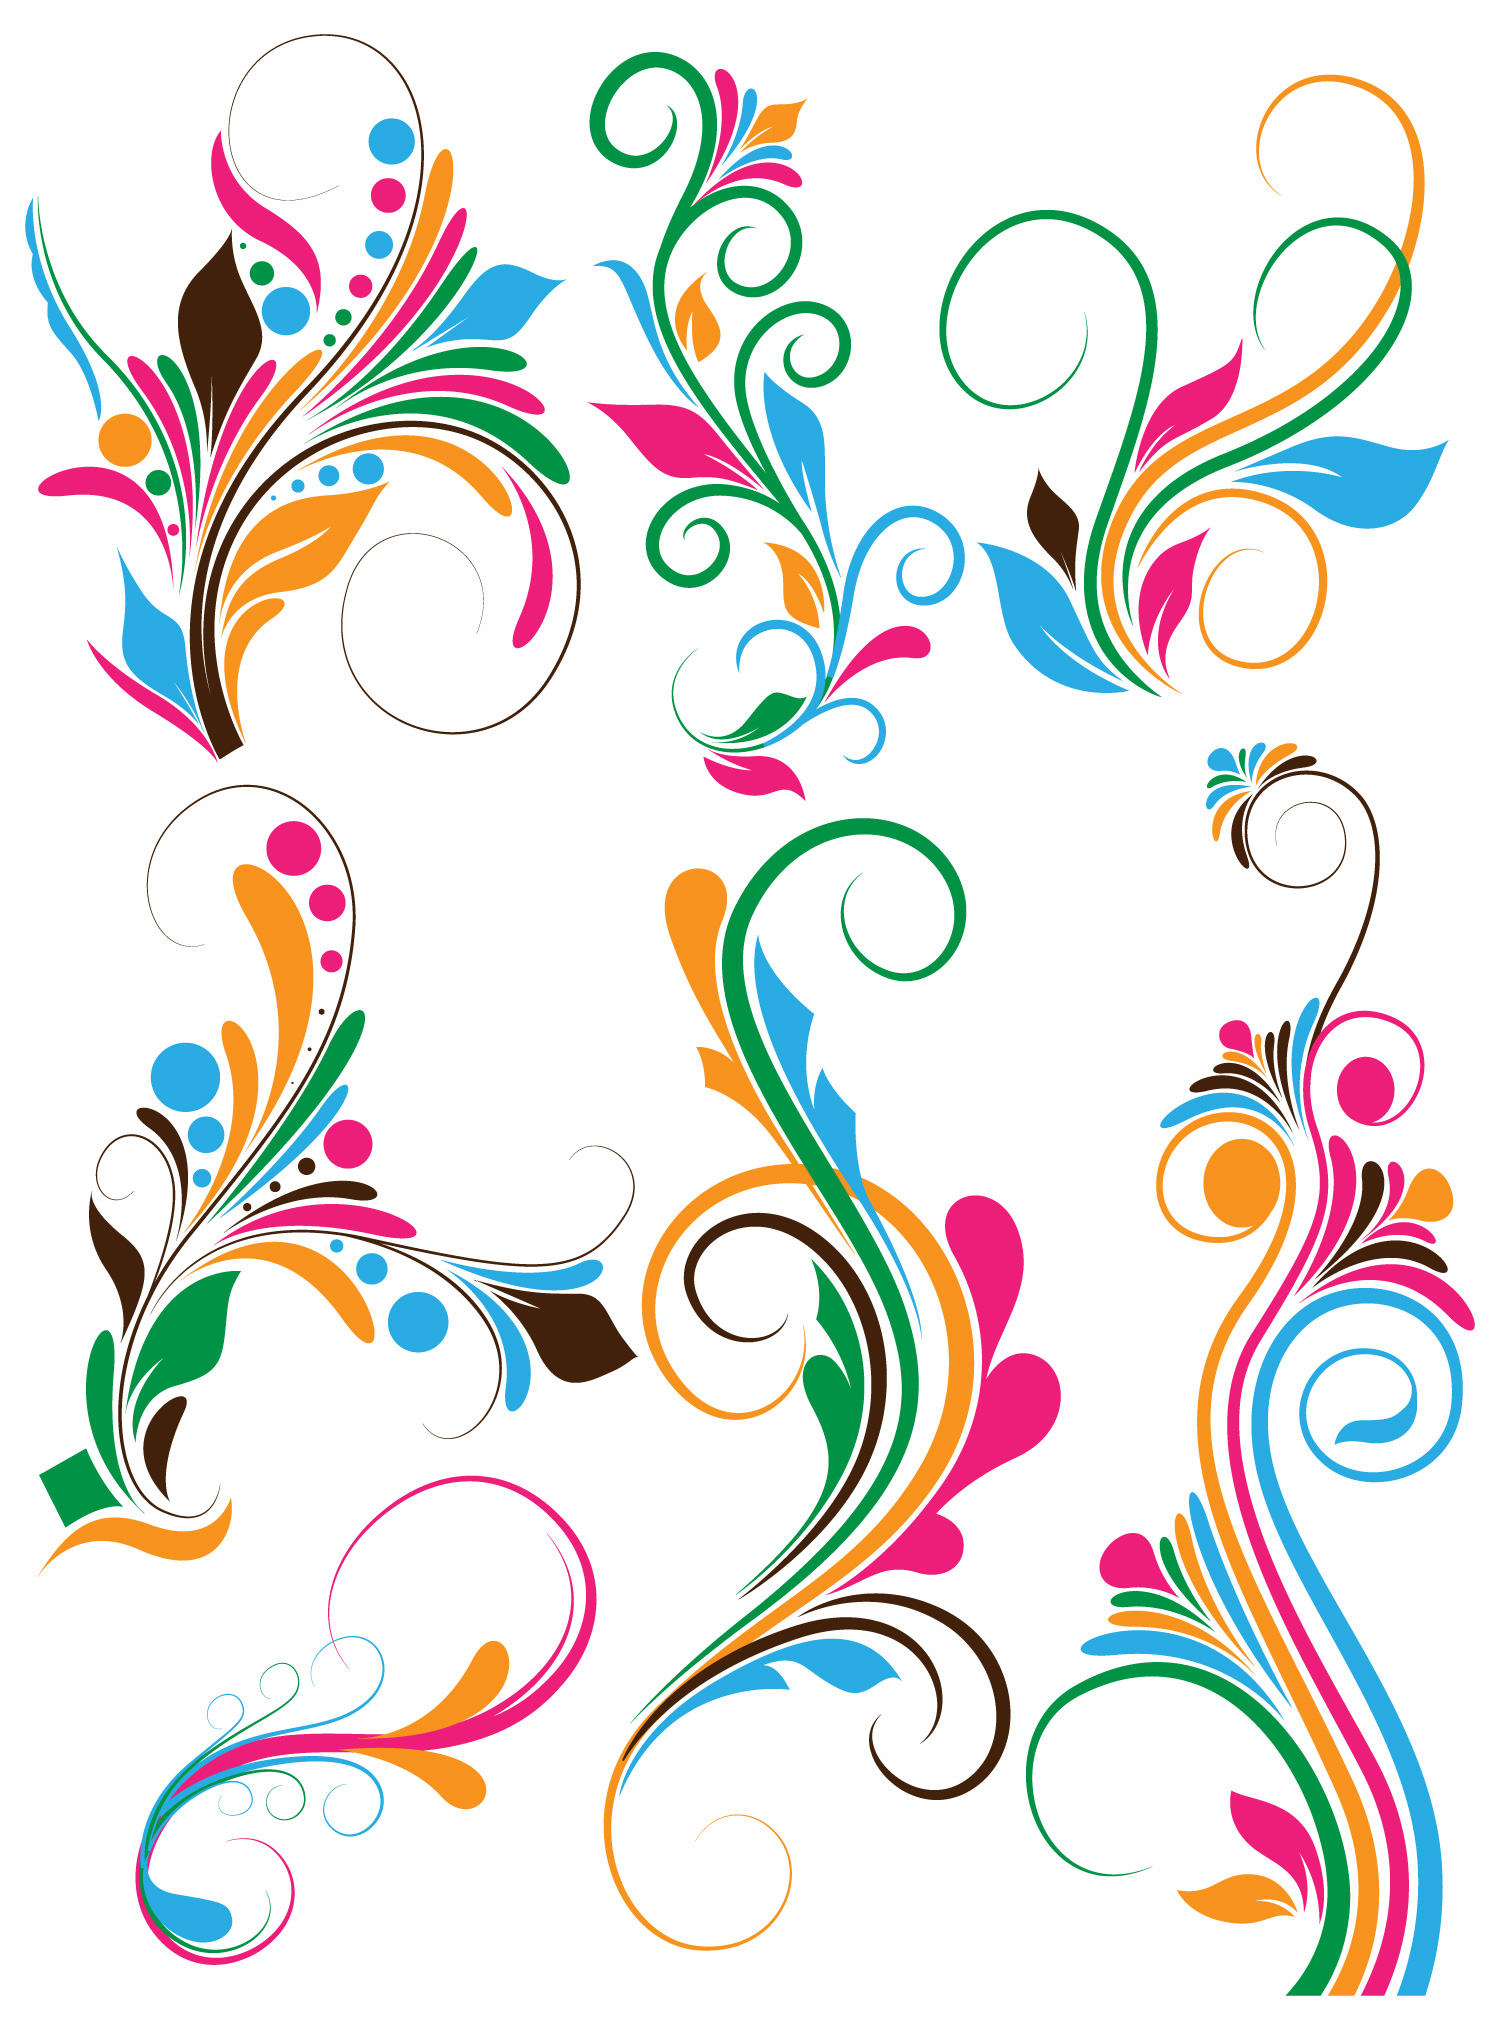 Flourish swirls Vectors, Brushes, PNG, Shapes & Picture ...